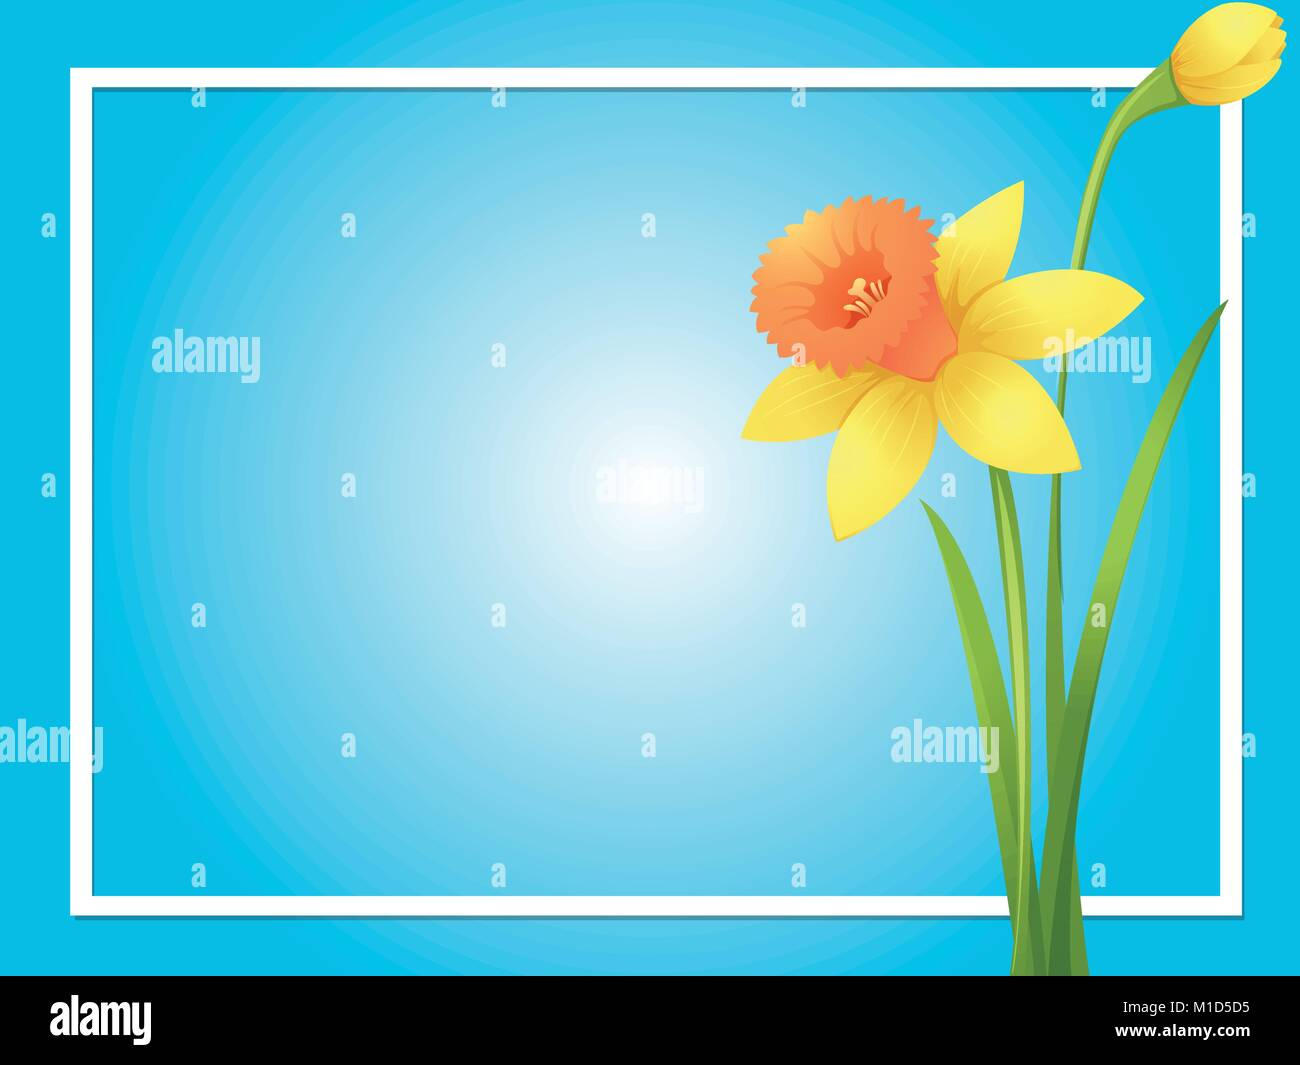 daffodil graphic stock vector images alamy